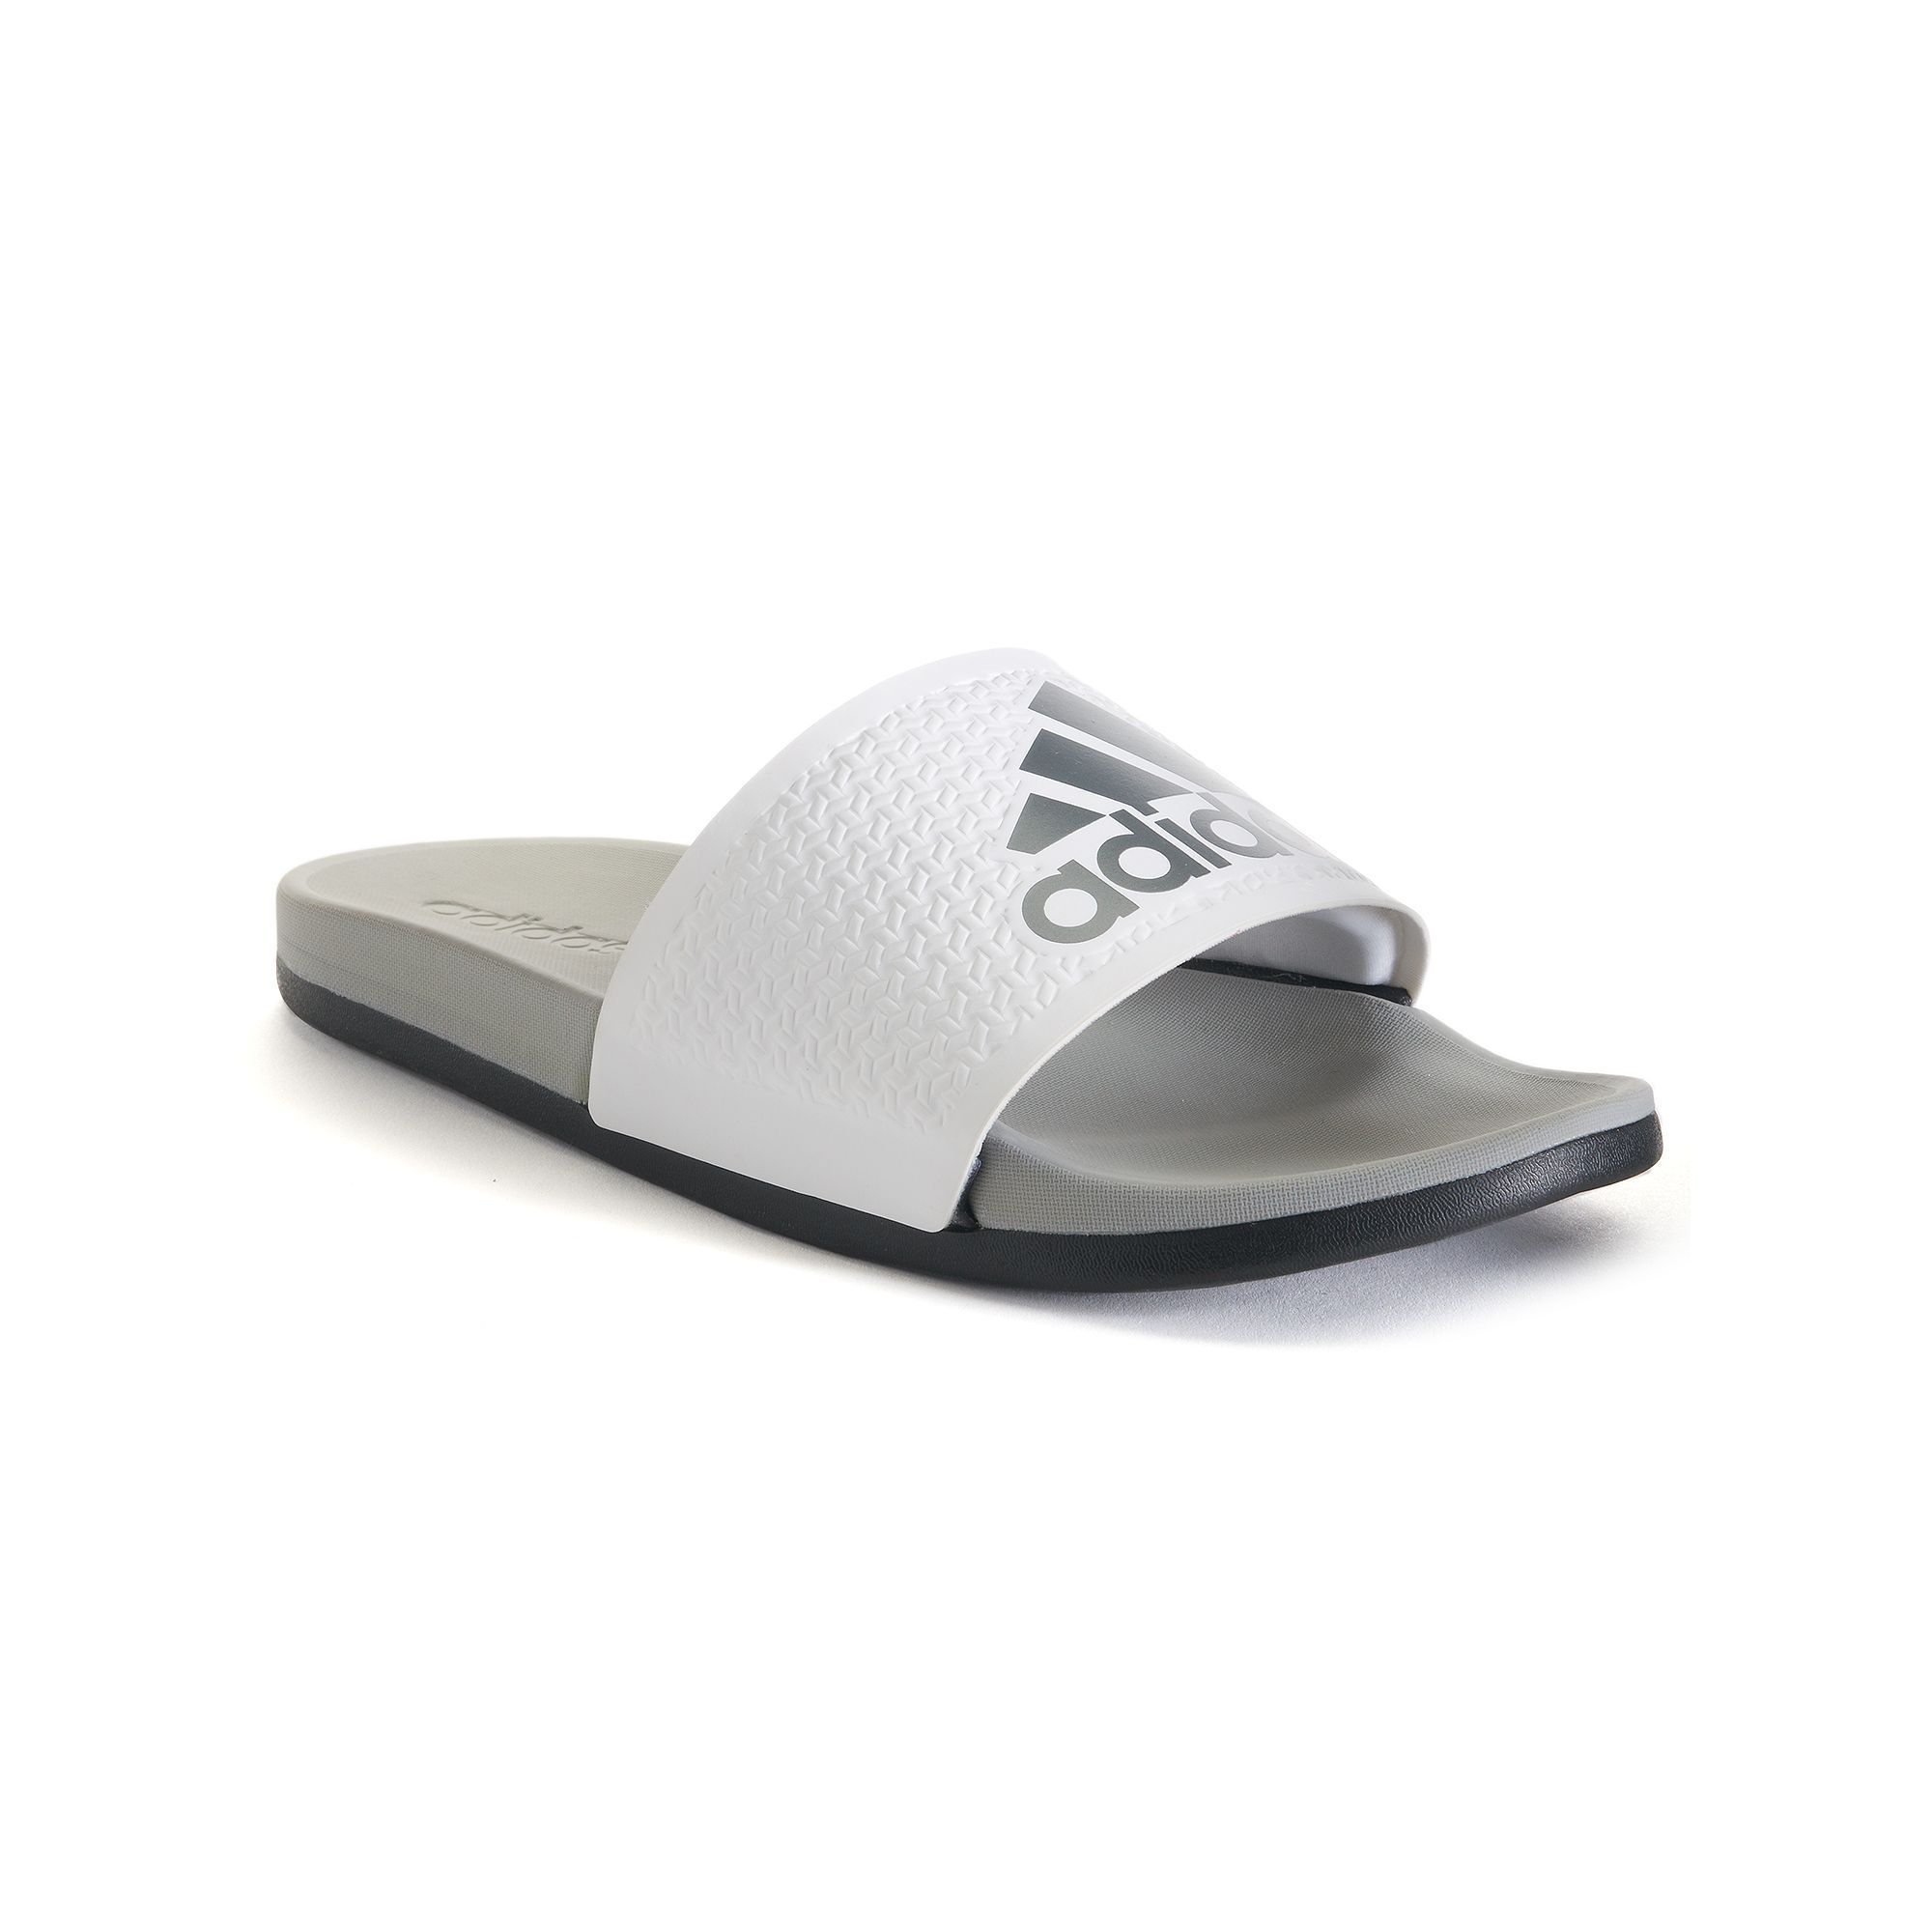 7c2c7356a adidas Adilette Supercloud Plus Men s Slide Sandals in 2019 ...